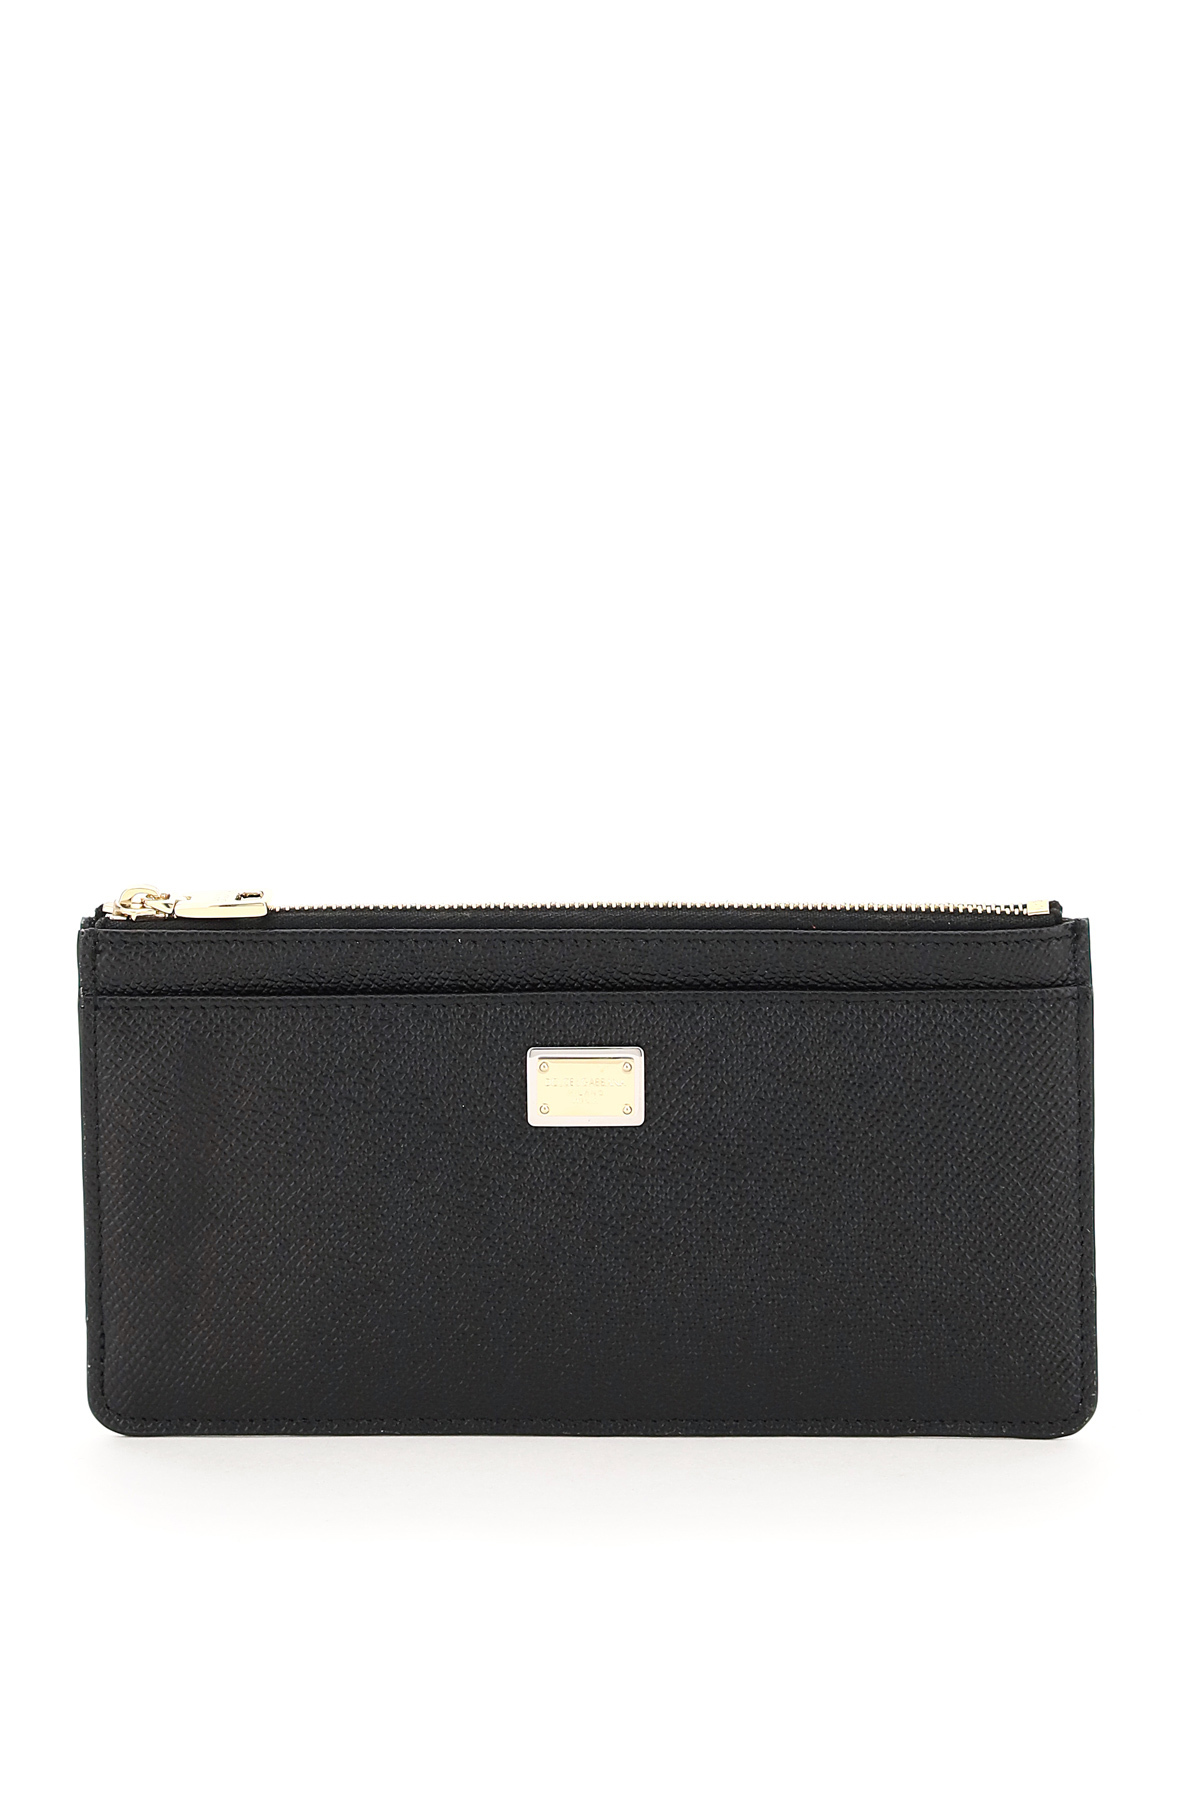 DOLCE & GABBANA CARD HOLDER POUCH IN DAUPHINE CALFSKIN OS Black Leather